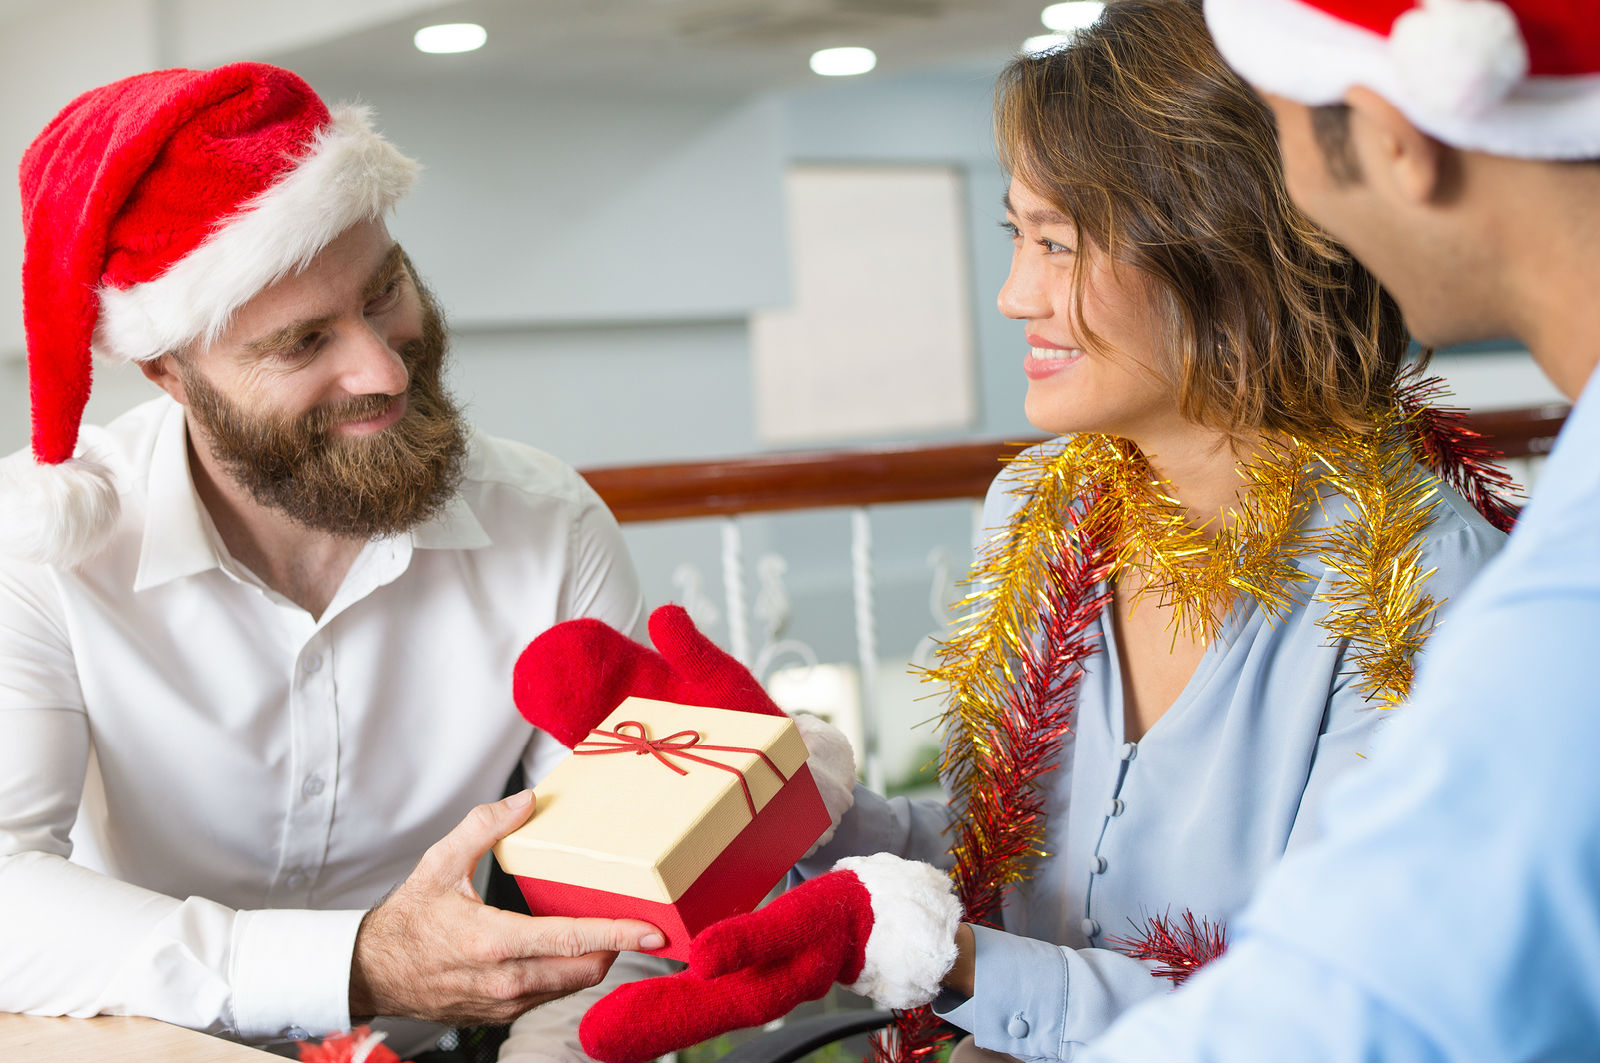 Thoughtful Gifts To Give A Leader This Christmas